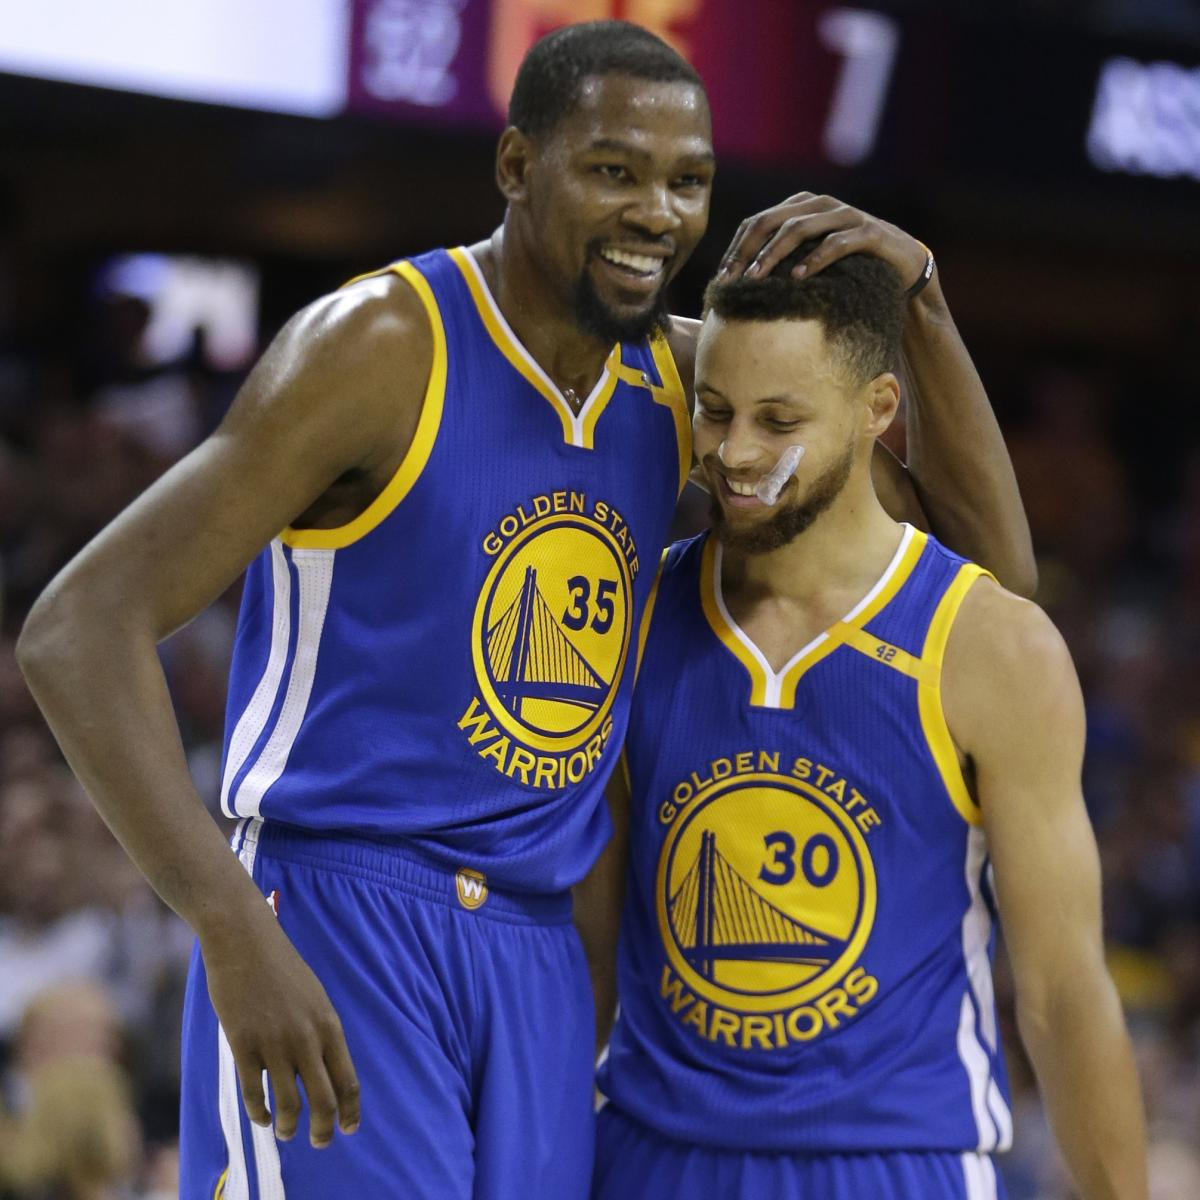 Warriors Come Out To Play Bleacher Report: Stephen Curry Responds To Kevin Durant's Comments On Under